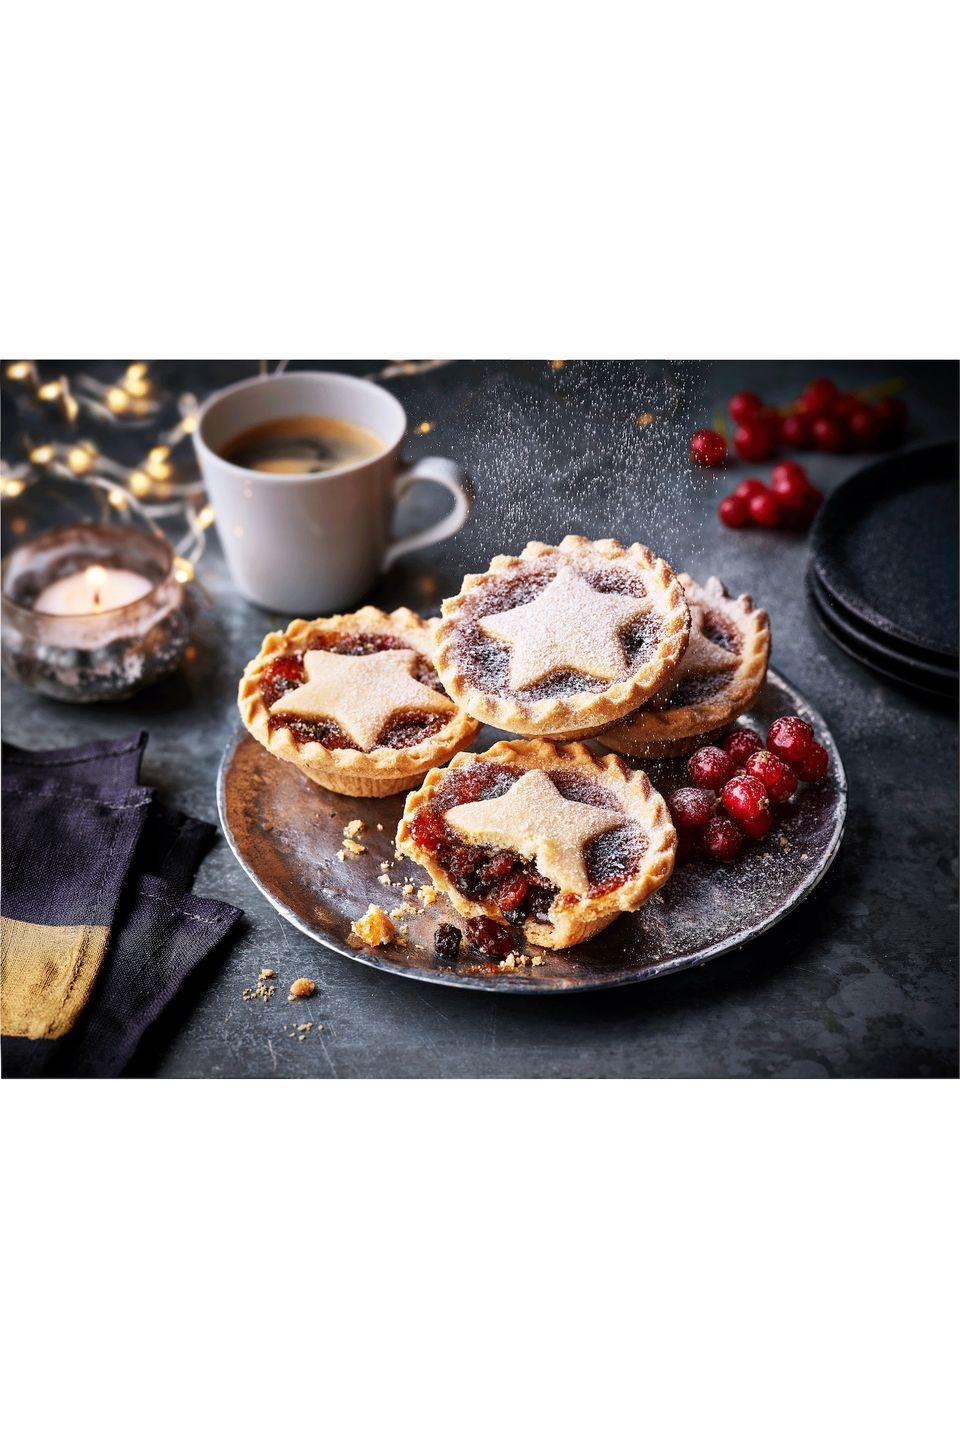 "<p><strong>Overall score: 72/100 </strong></p><p>These gluten-free mince pies have a festive star design, and a rich and buttery aroma. The mincemeat has a good ratio of vine fruits to sweet candied peel, while the pastry has a good thickness and a slight shortbread crumble to it. </p><p><a class=""link rapid-noclick-resp"" href=""https://christmasfood.marksandspencer.ie/#intid=IE_Christmas_lp_circle_food"" rel=""nofollow noopener"" target=""_blank"" data-ylk=""slk:AVAILABLE IN STORE ONLY"">AVAILABLE IN STORE ONLY</a> <strong>M&S, £2.50 for 205g (serves 4)</strong></p>"